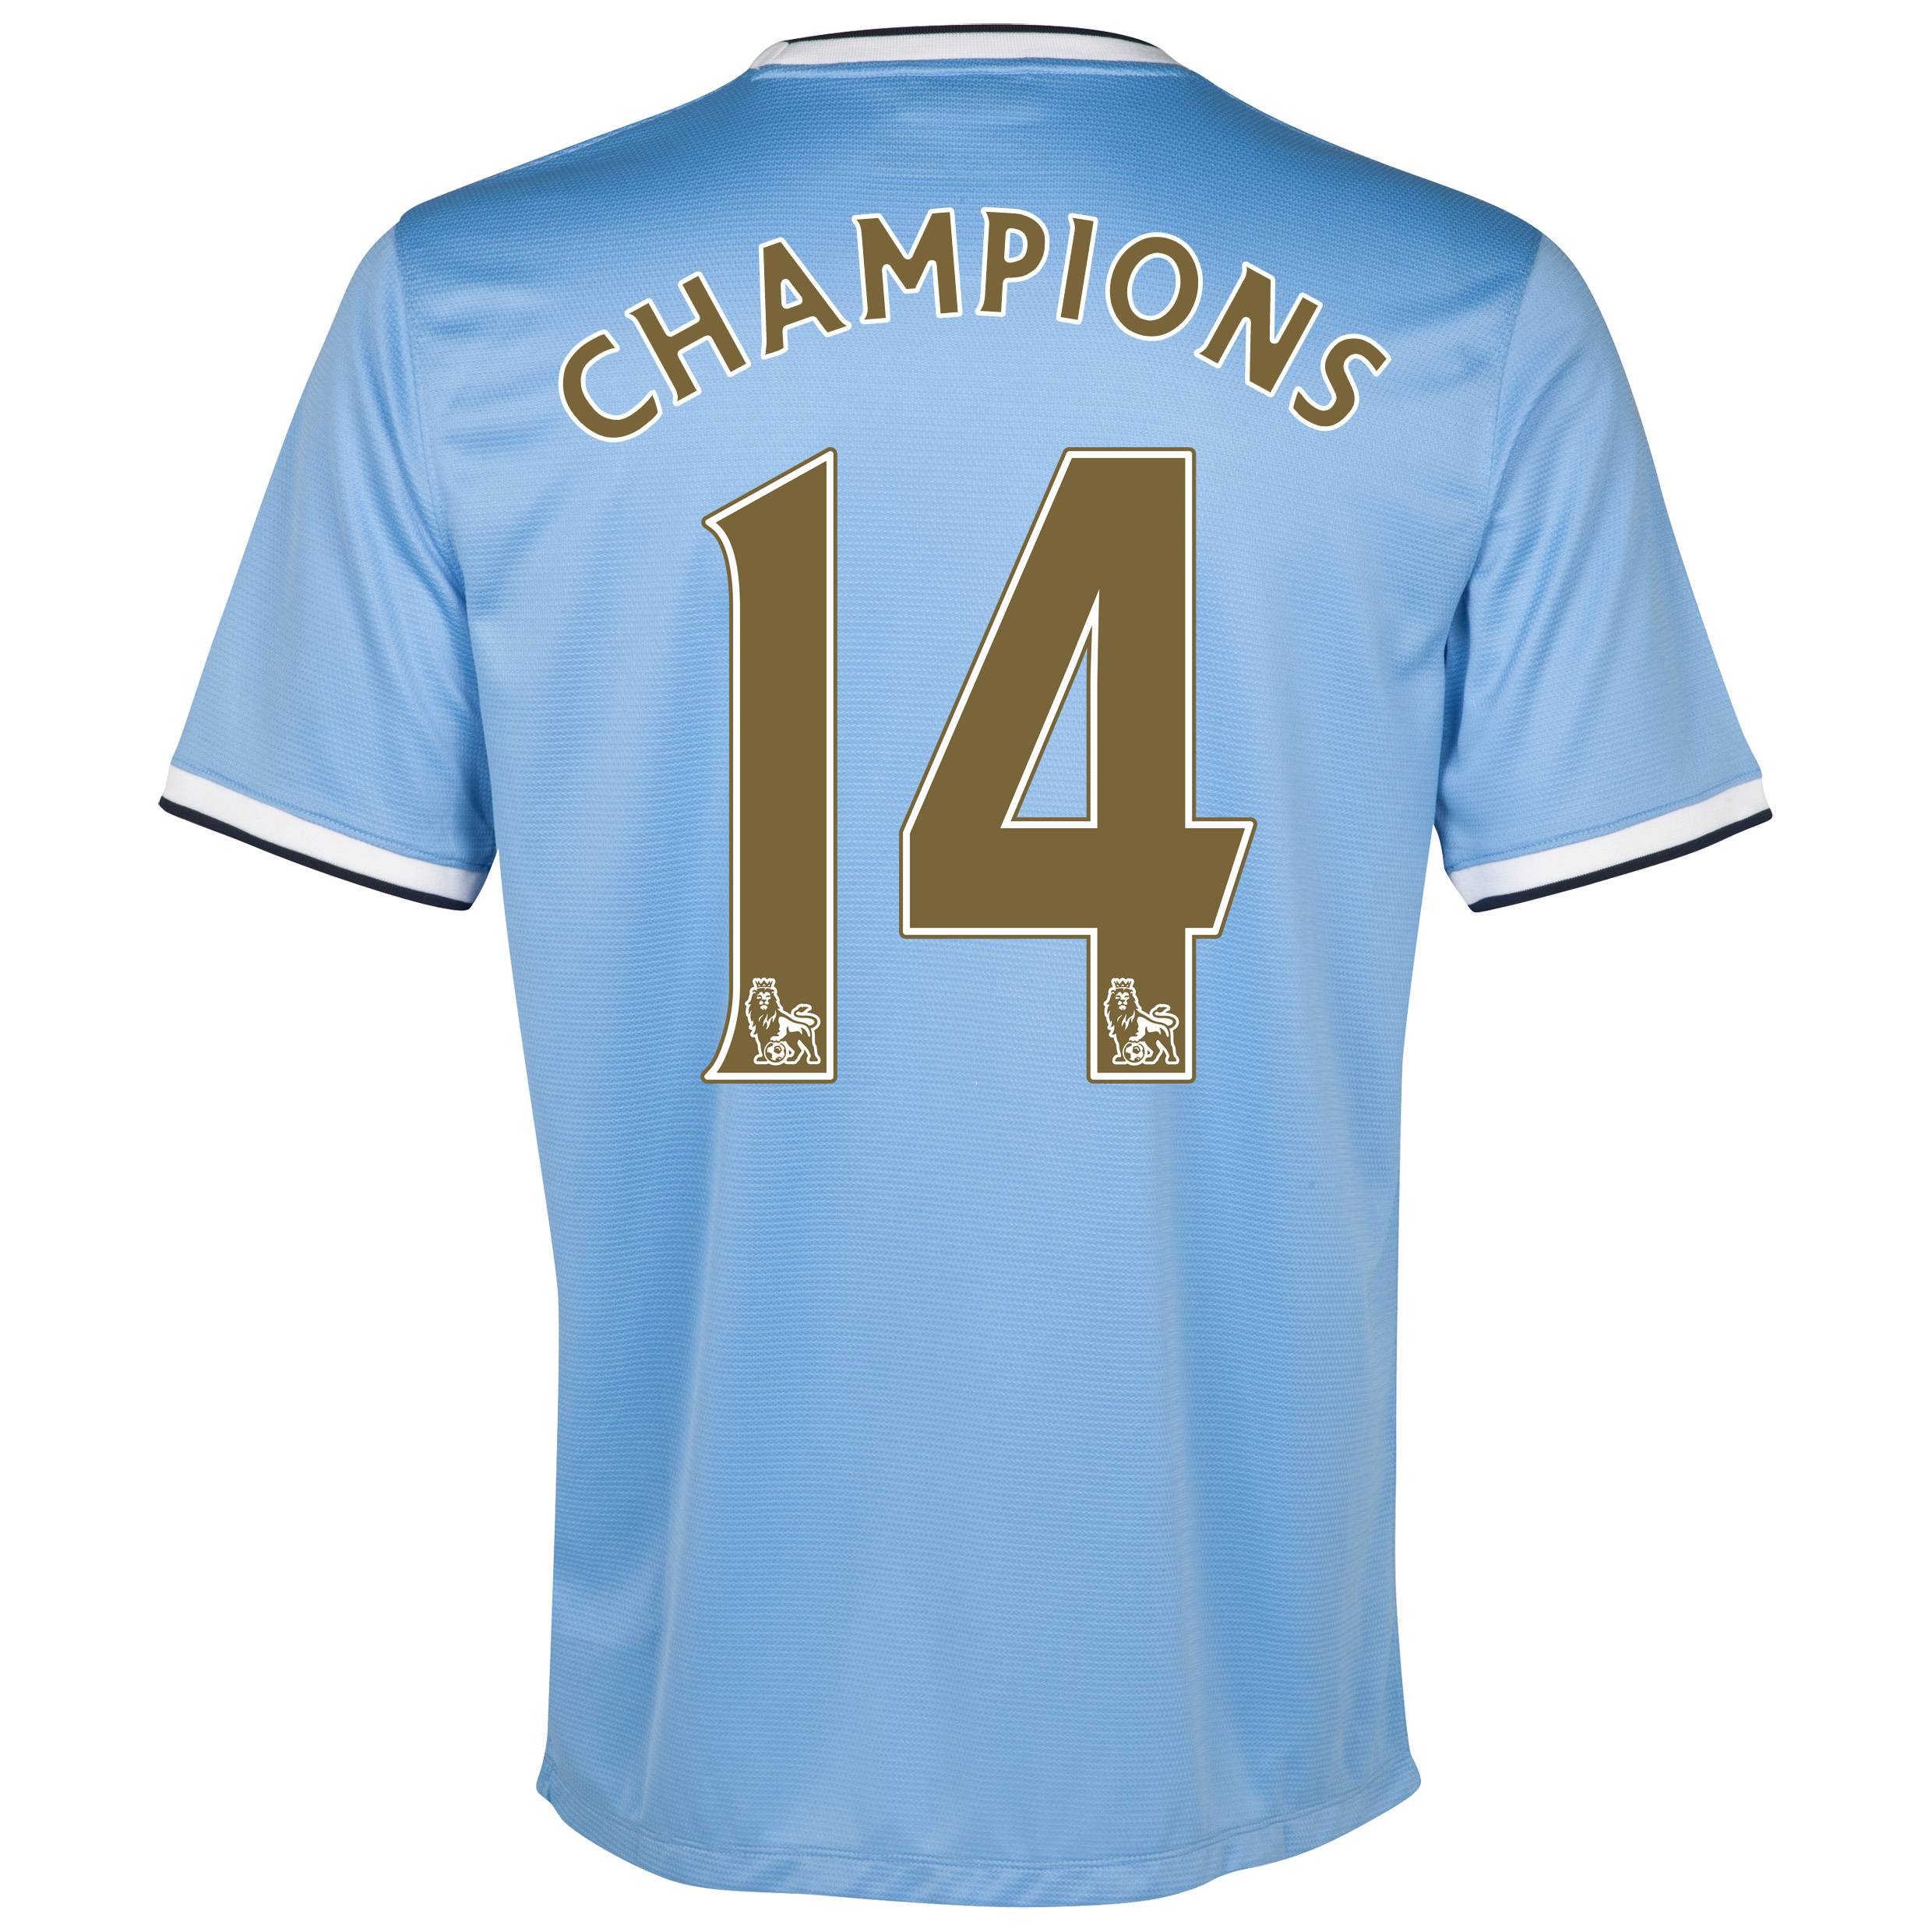 Manchester City Home Shirt 2013/14 with Champions 14 printing